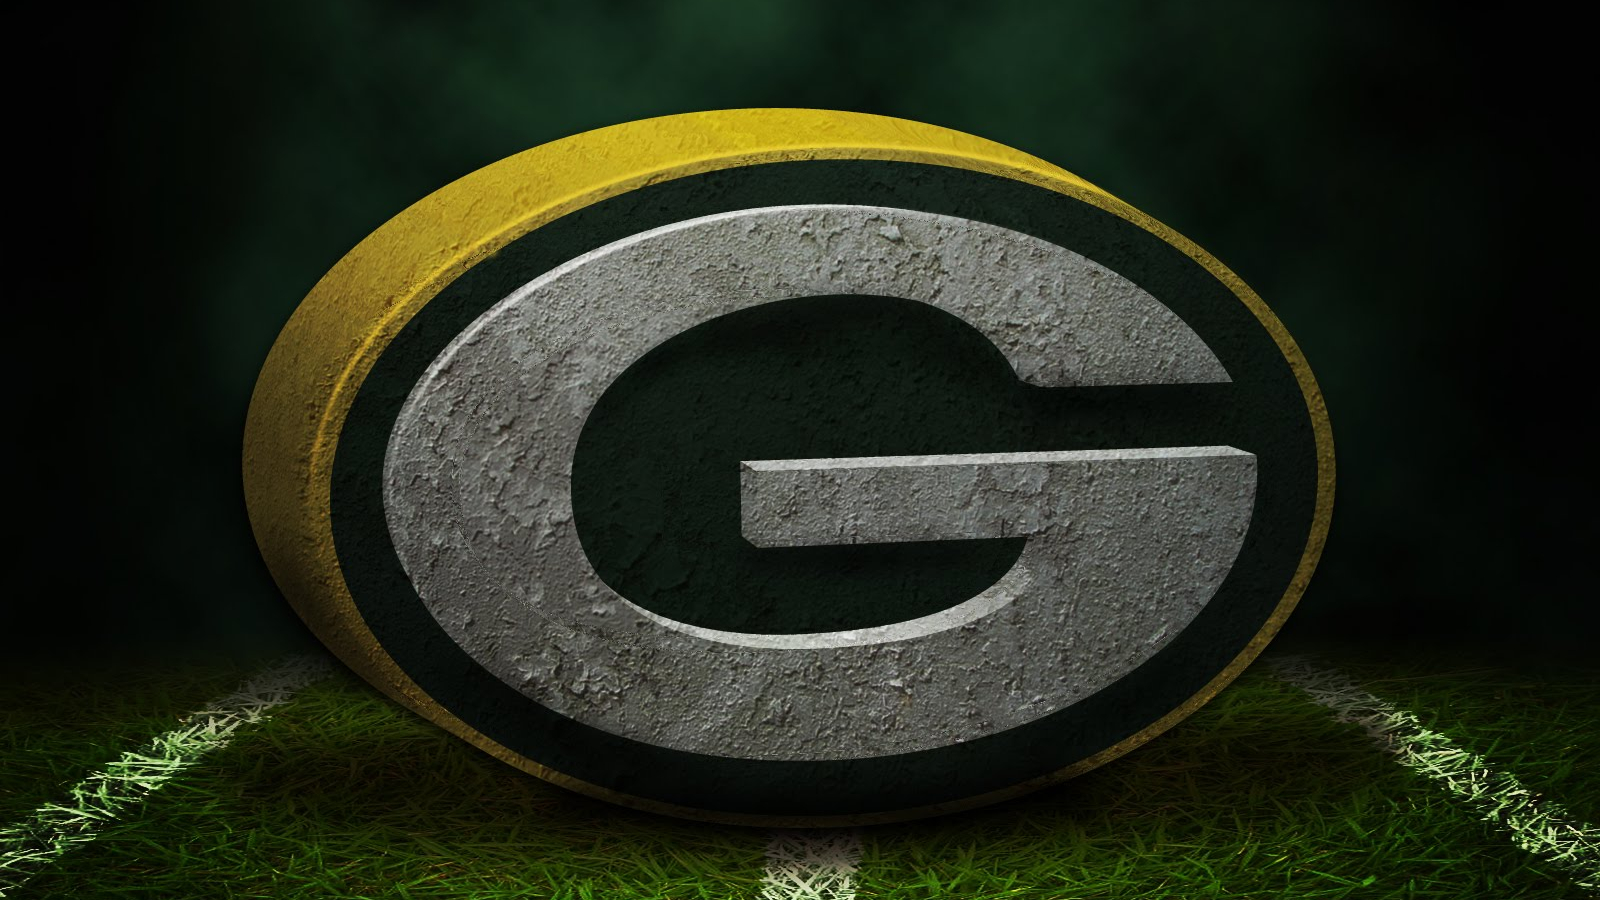 Free Download Green Bay Packers Wallpaper Packers Logo Wallpaper